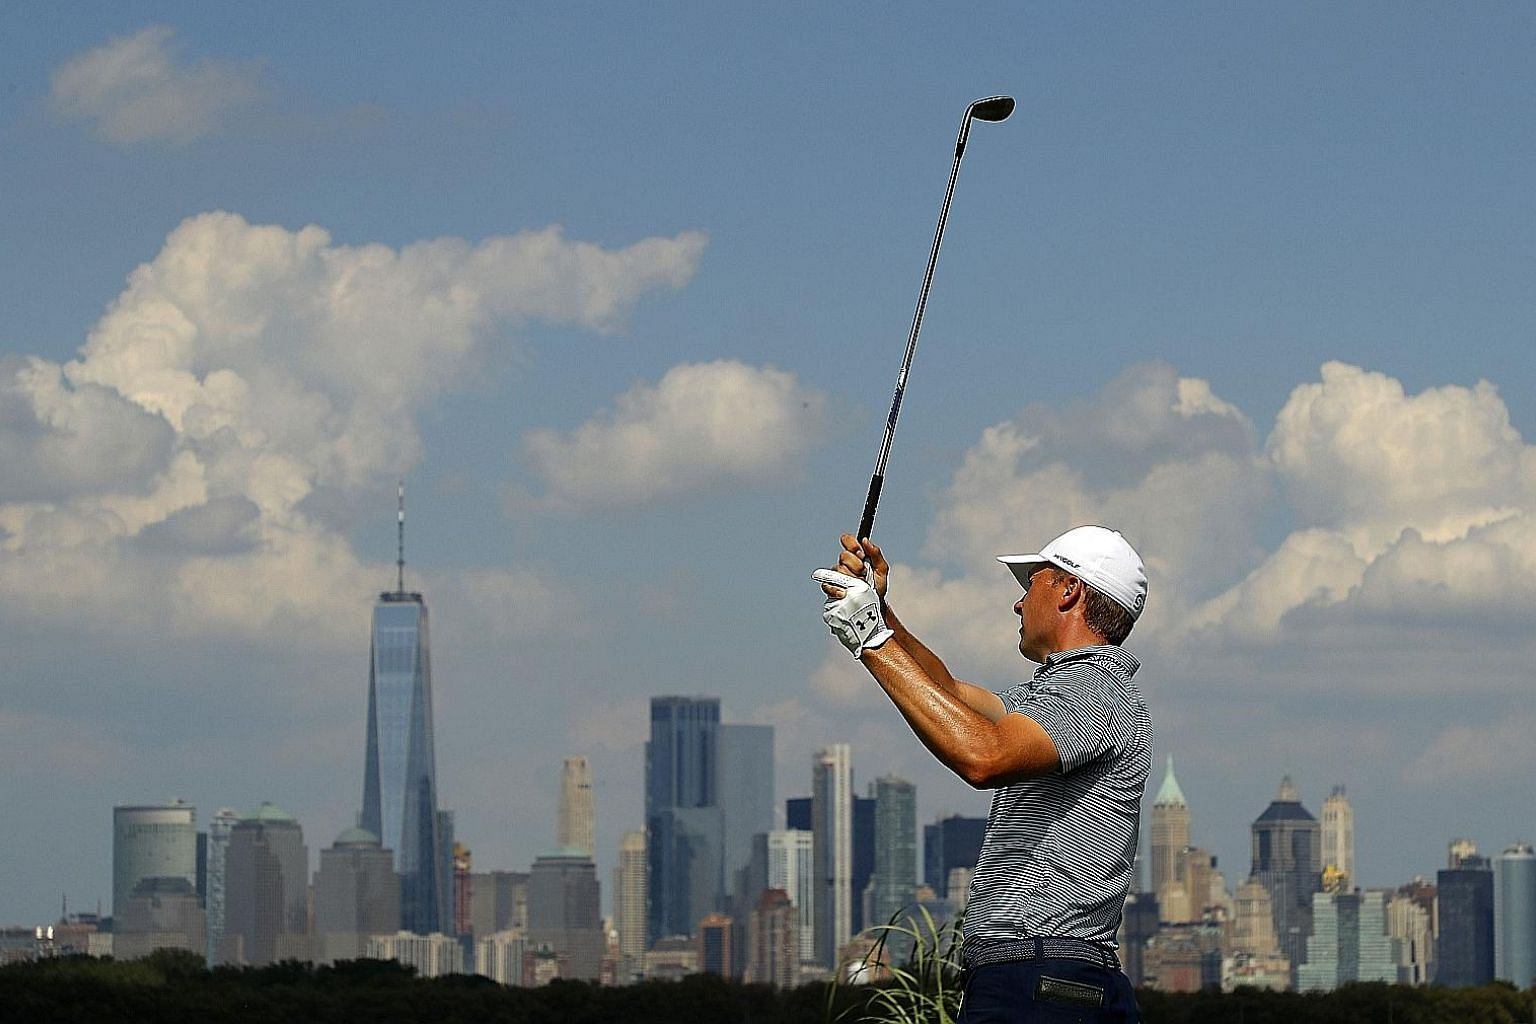 Jordan Spieth hitting off the 14th tee at The Northern Trust at Liberty National Golf Club in Jersey City on Thursday. he followed his opening four-under 67 with a 64 on Friday to head into the weekend in second place. PHOTO: AGENCE FRANCE-PRESSE